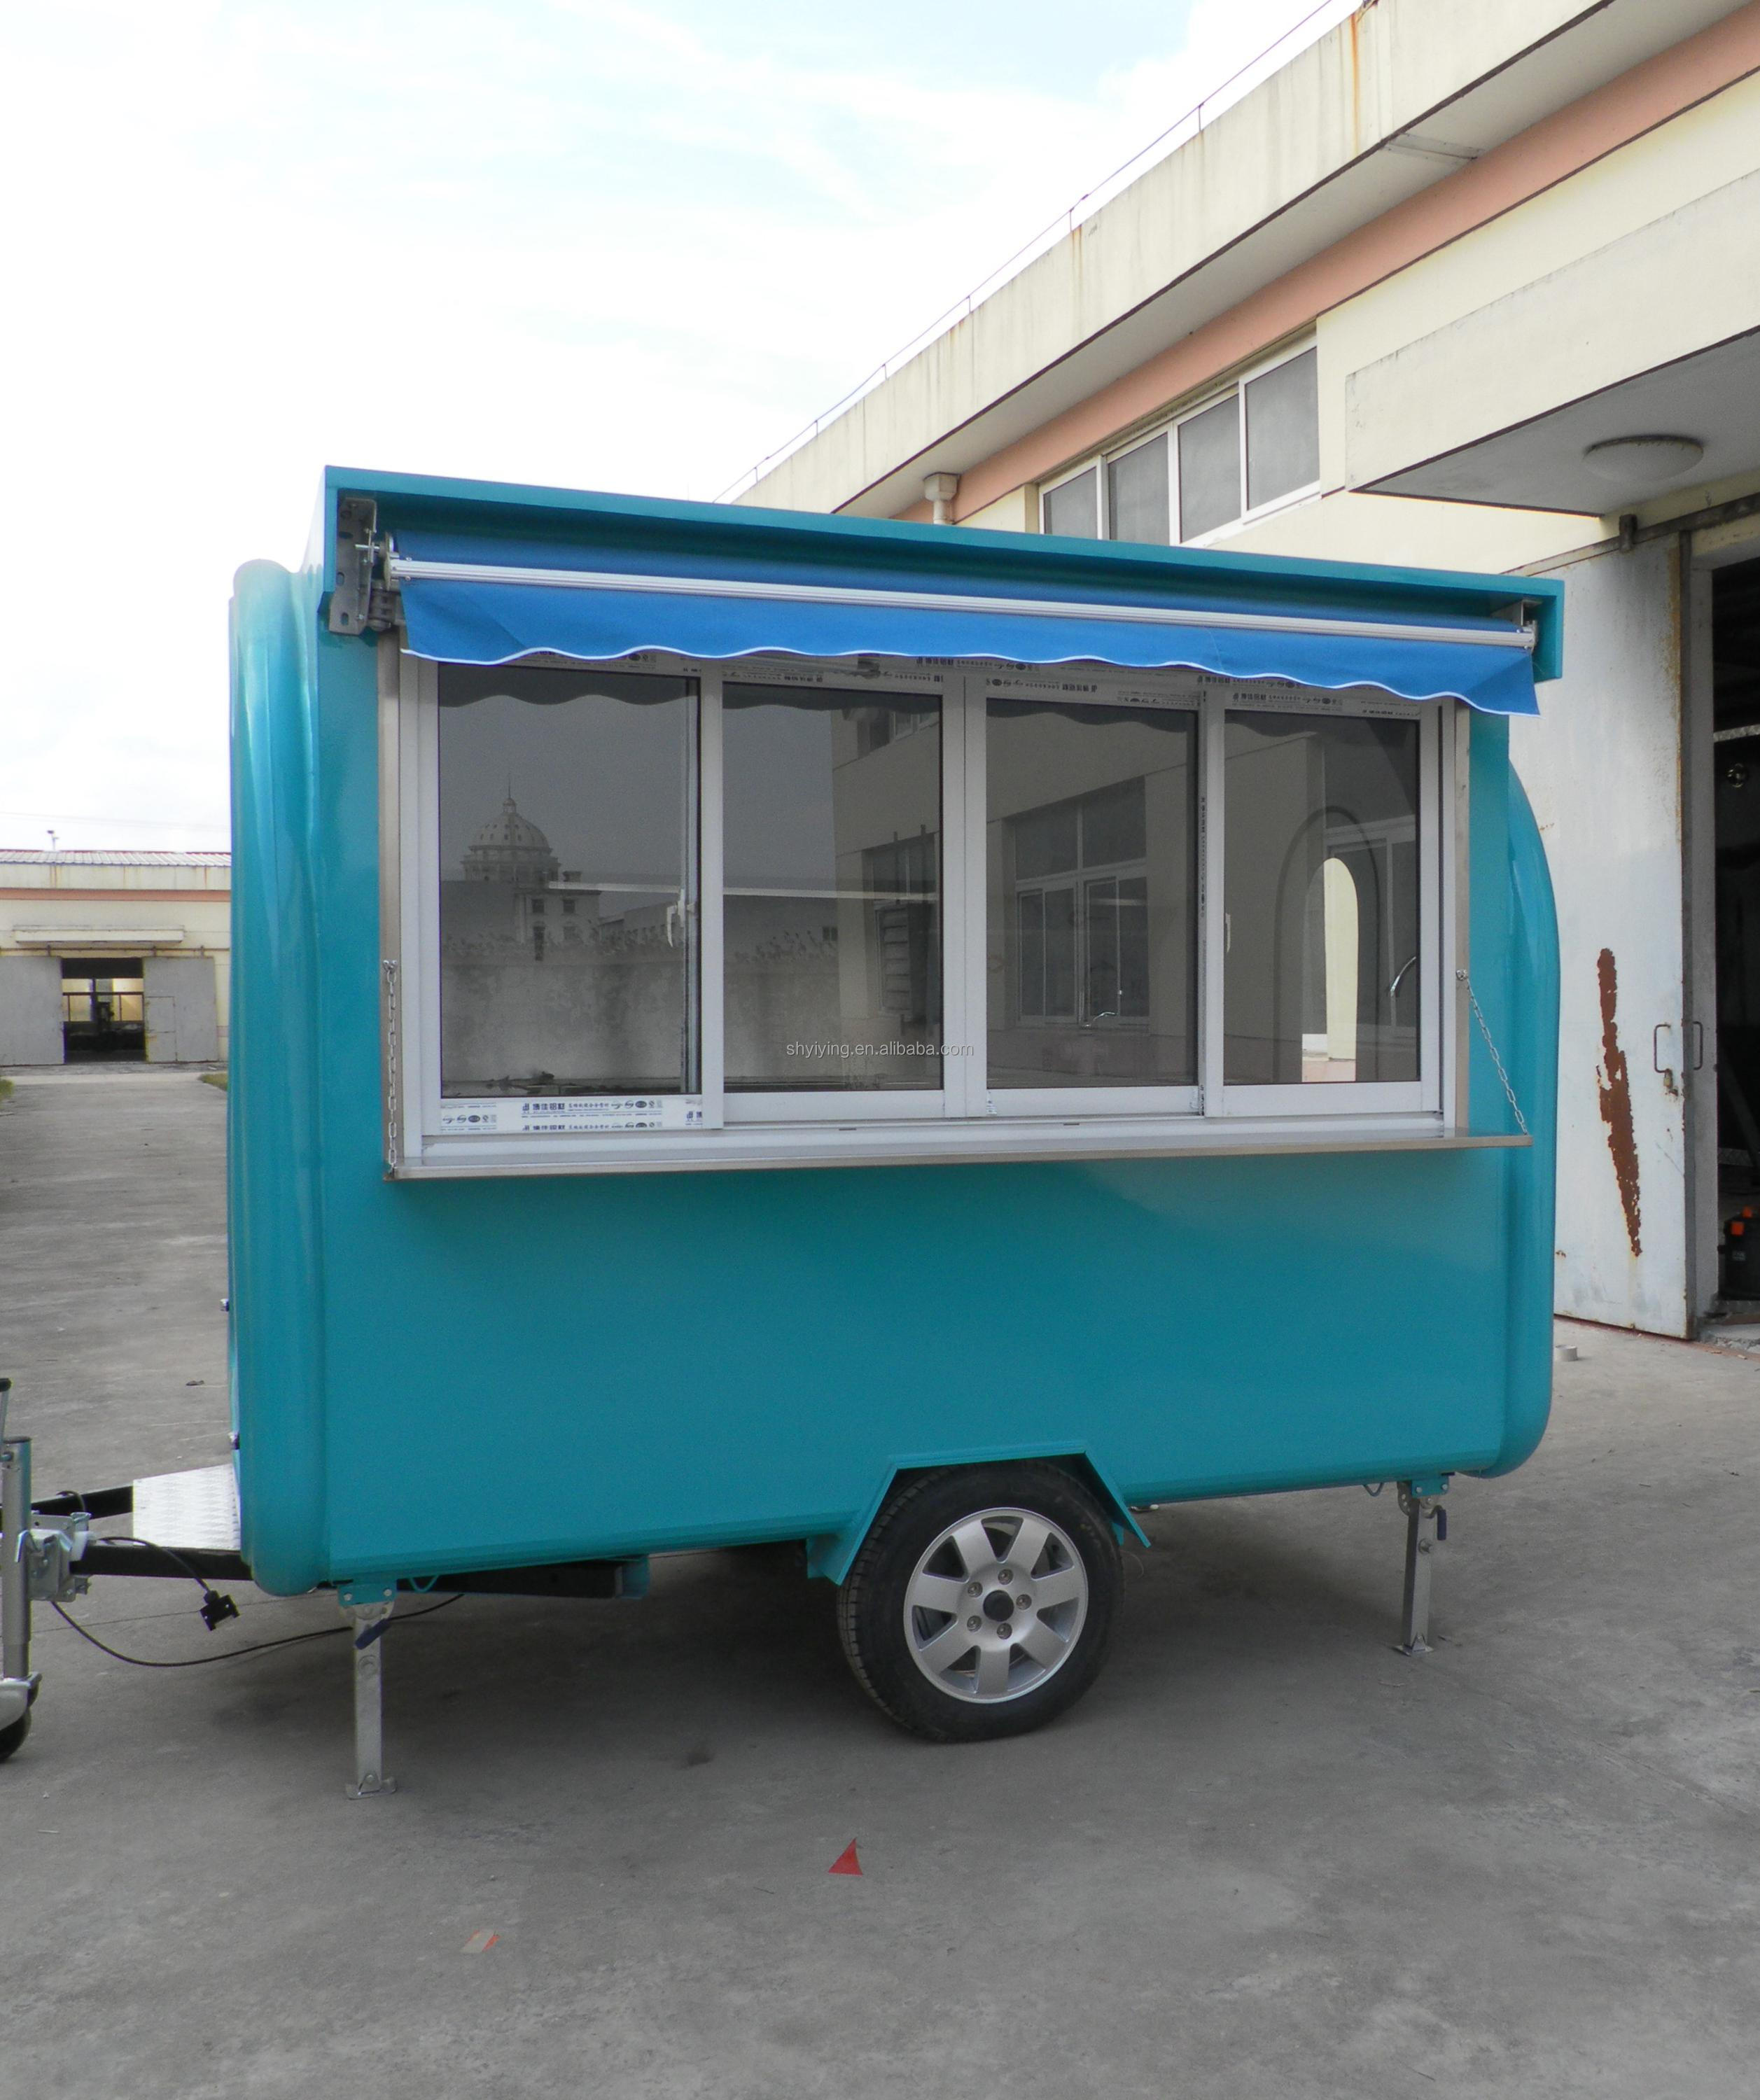 Food Cart Business In The Philippines, Food Cart Business In The ...